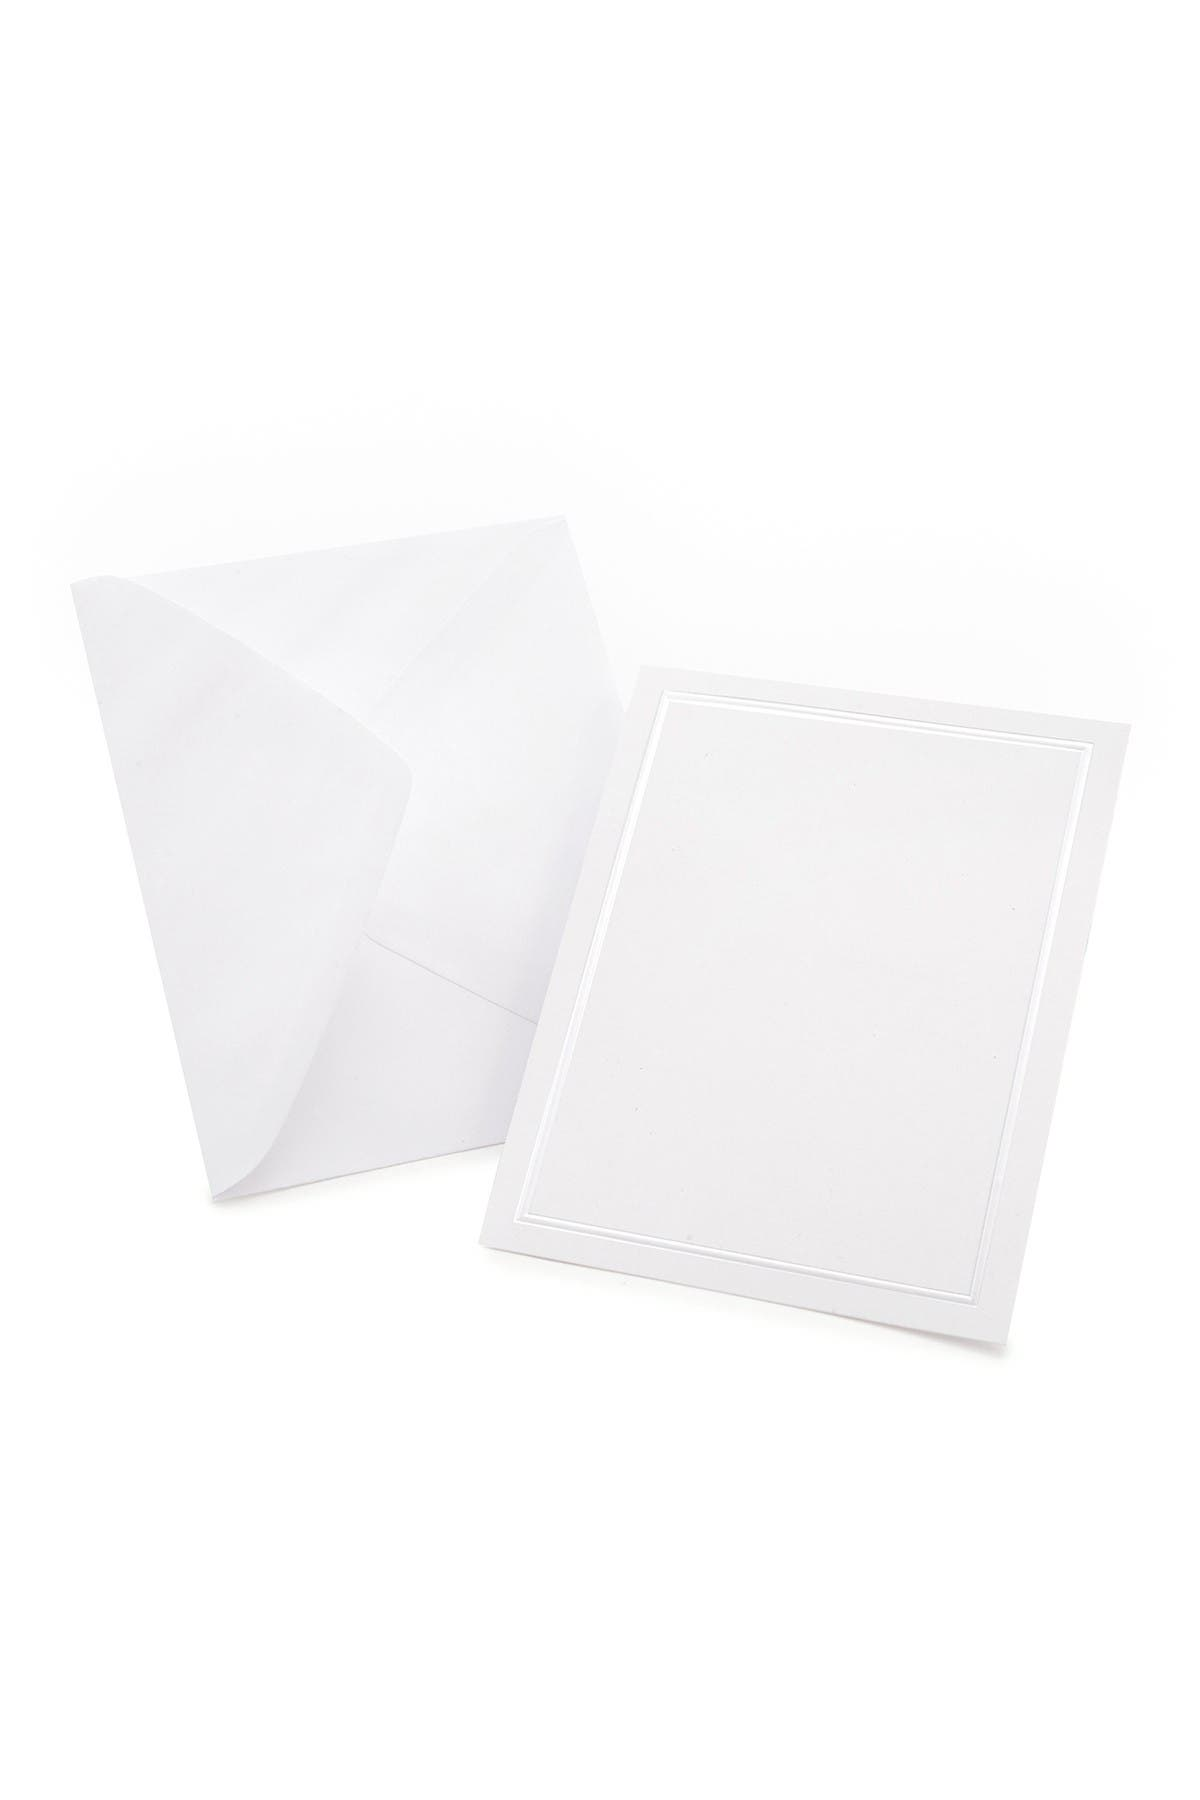 Image of GARTNER STUDIOS White Pearl Border All Purpose Blank Cards - Set of 50